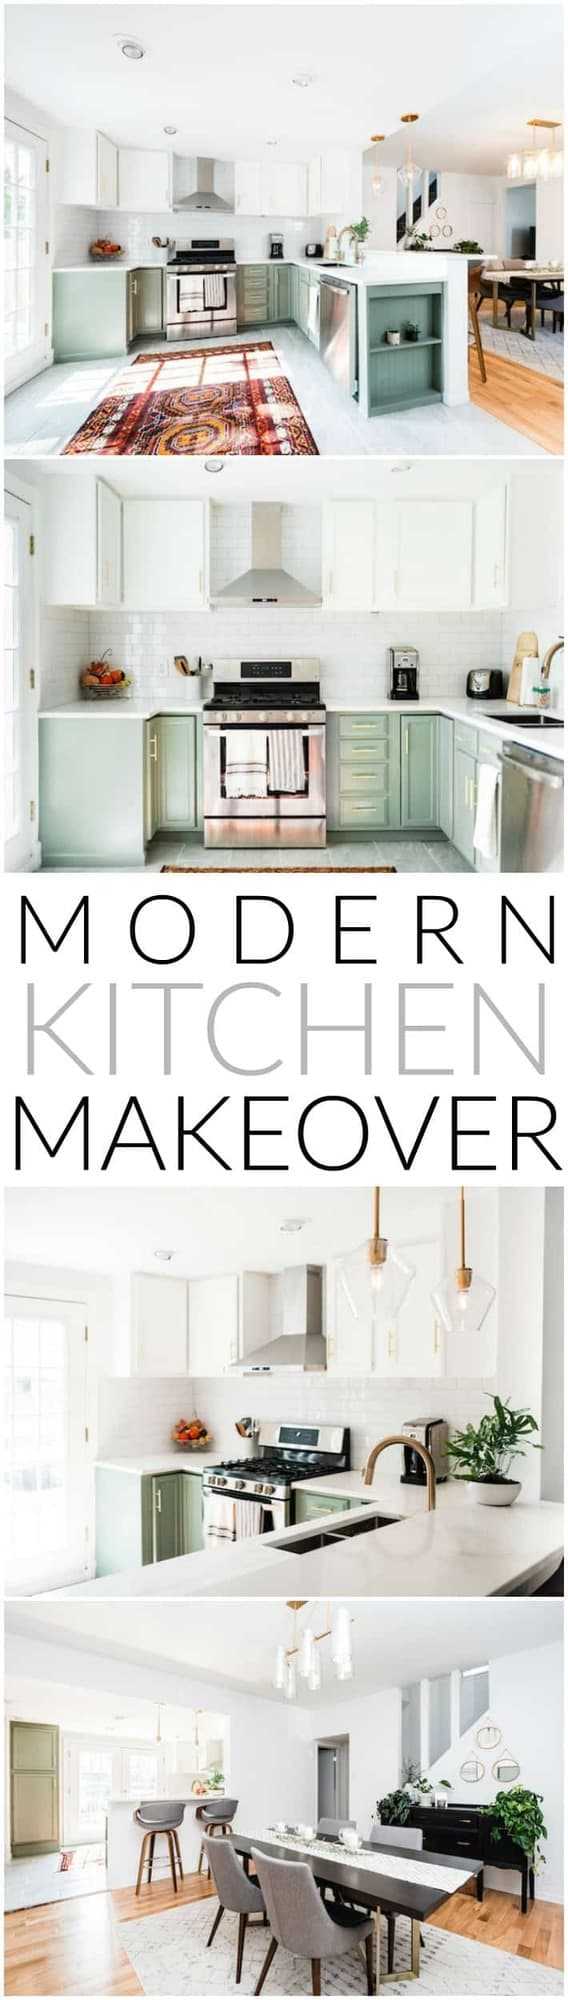 Modern Kitchen Makeover + How To